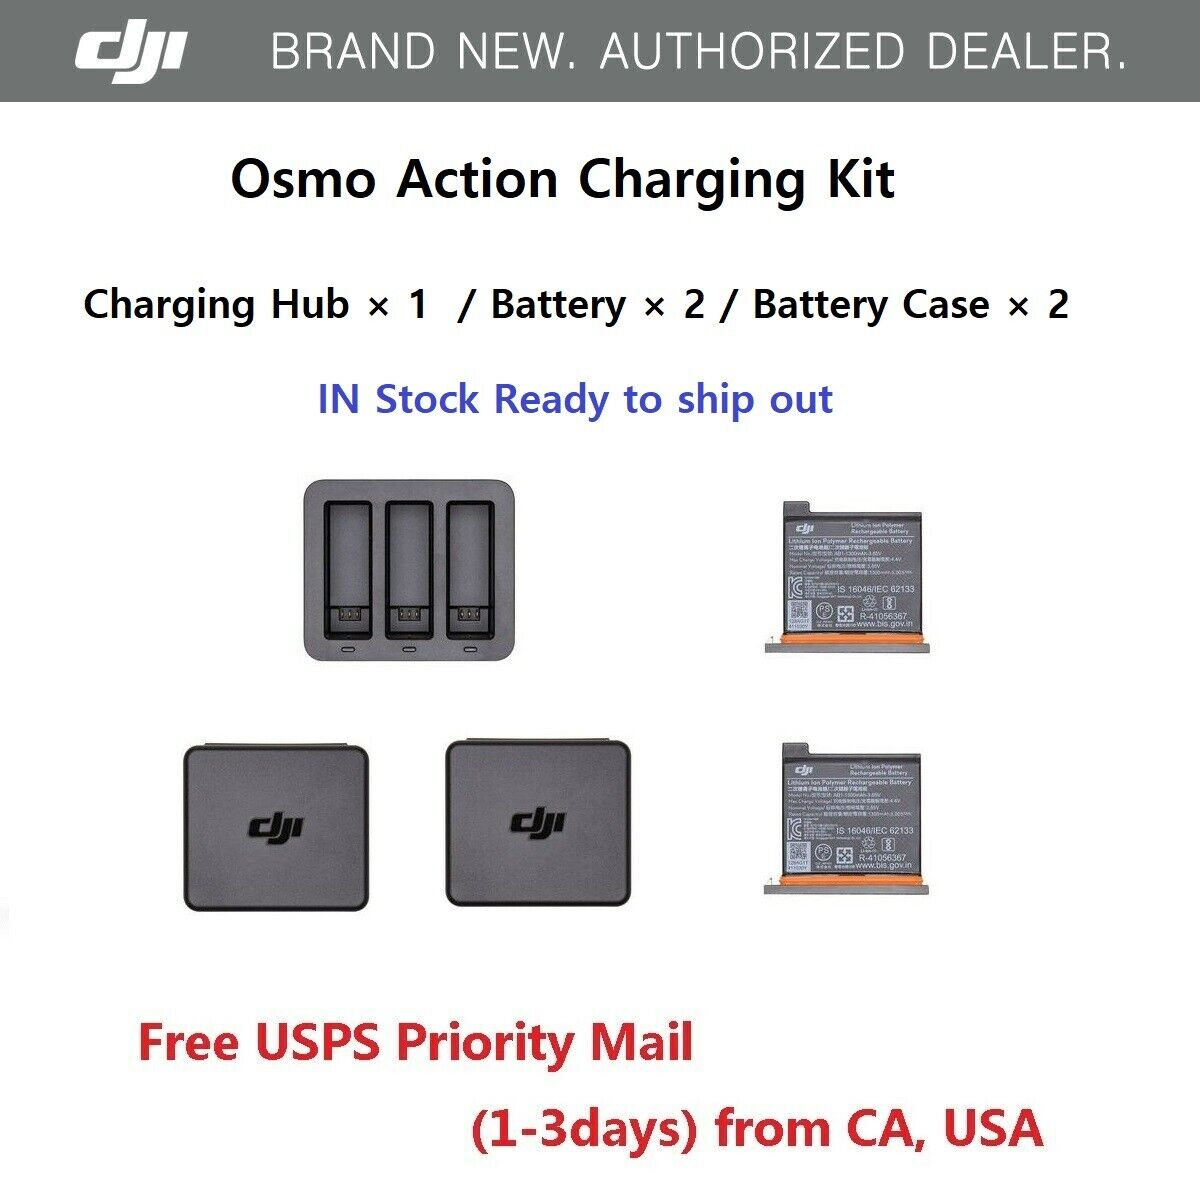 dji-osmo-action-camera-battery-charging-kit-charger-hub-battery-x-2-case-x-2